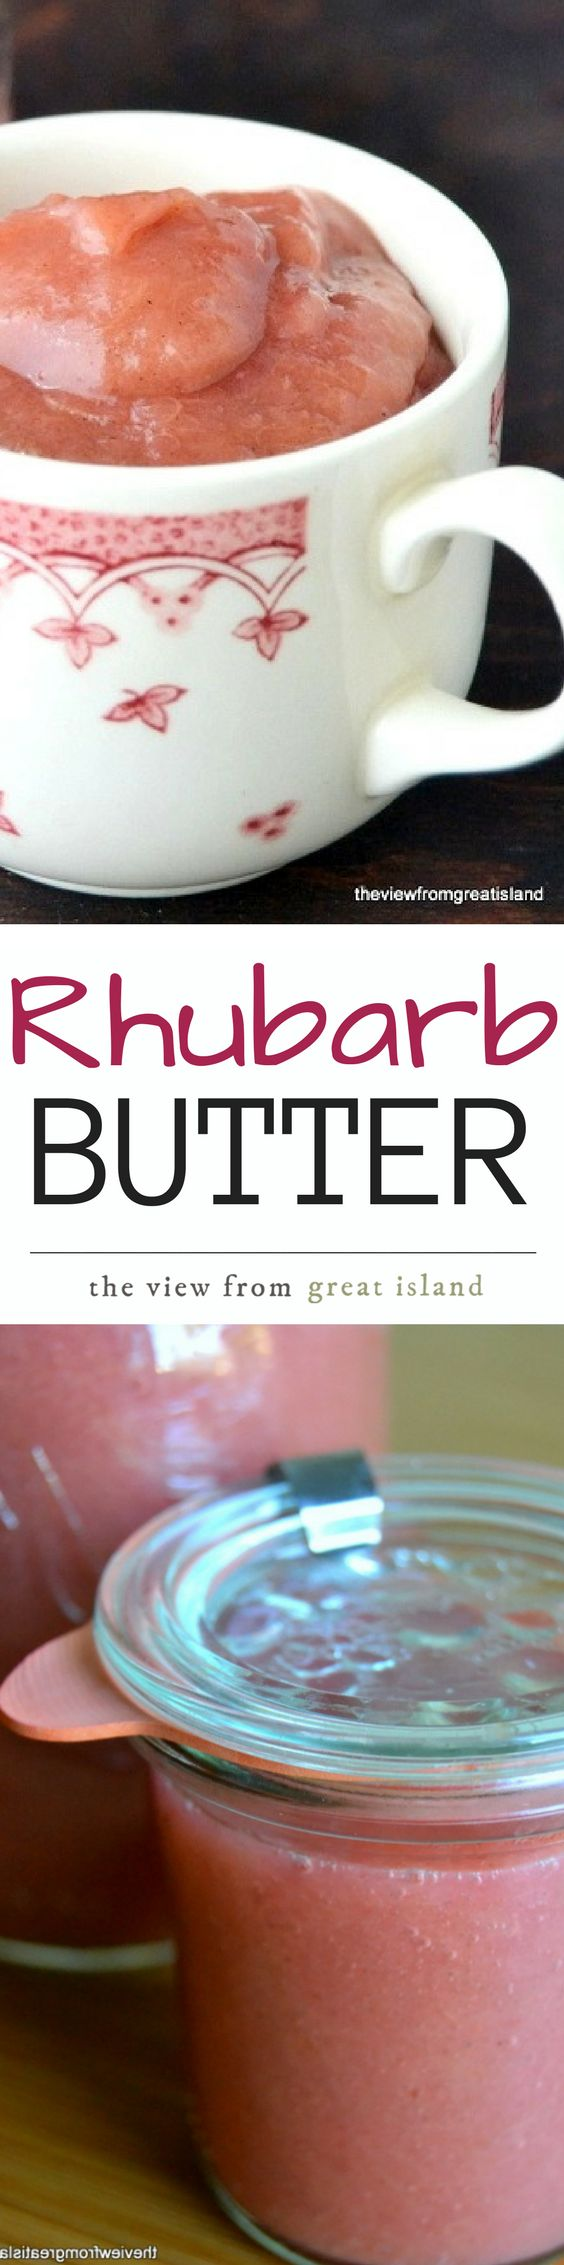 At the first sighting of fresh rhubarb every spring I make up a batch of my sweet/tangy Rhubarb Butter ~ spread it on toast, muffins, biscuits, or just eat it by the spoonful!